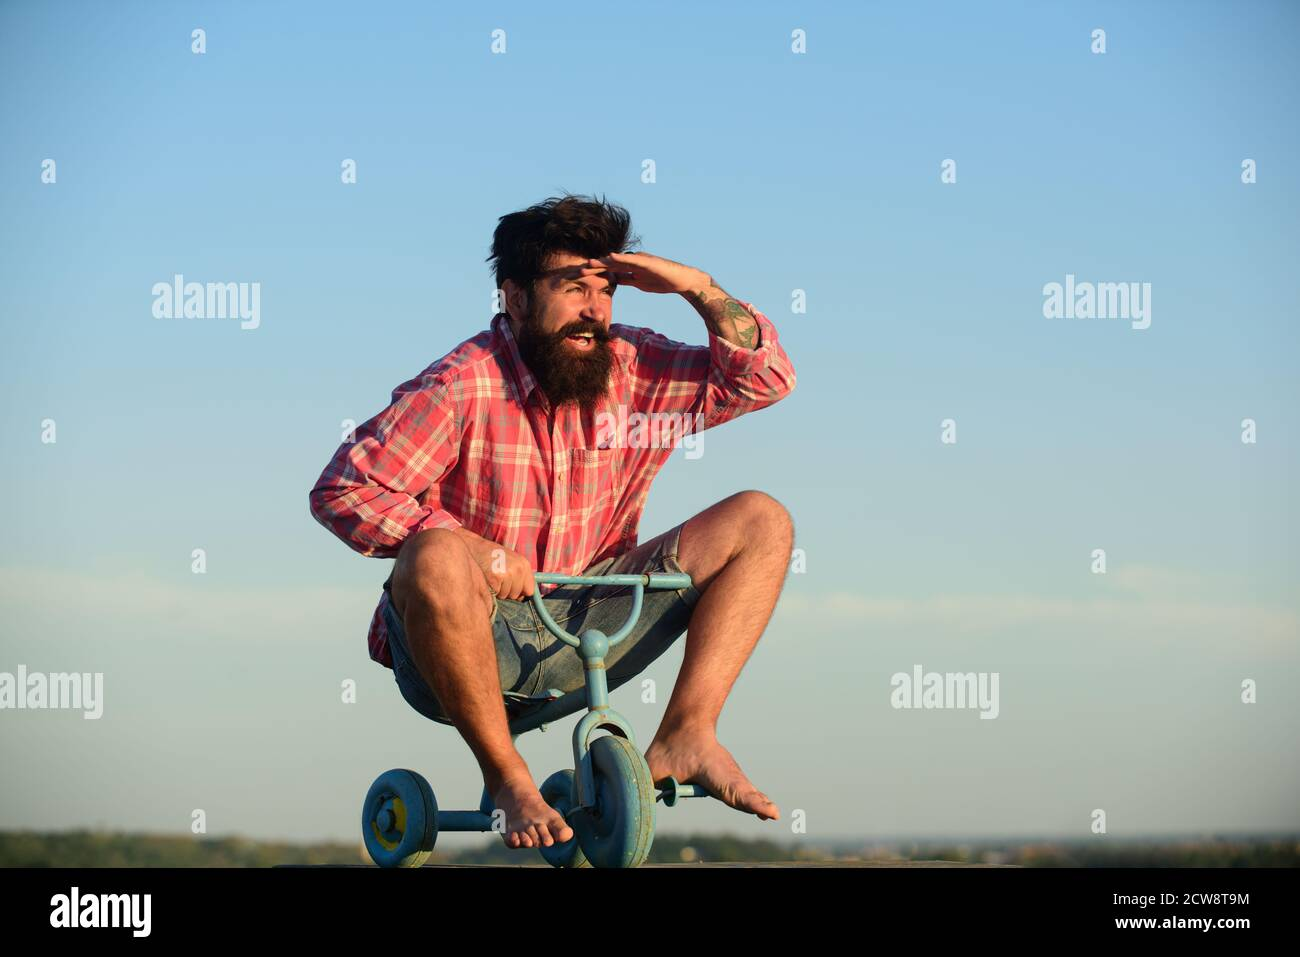 Crazy man riding a small bicycle. Funny man on a childrens bike. Stock Photo